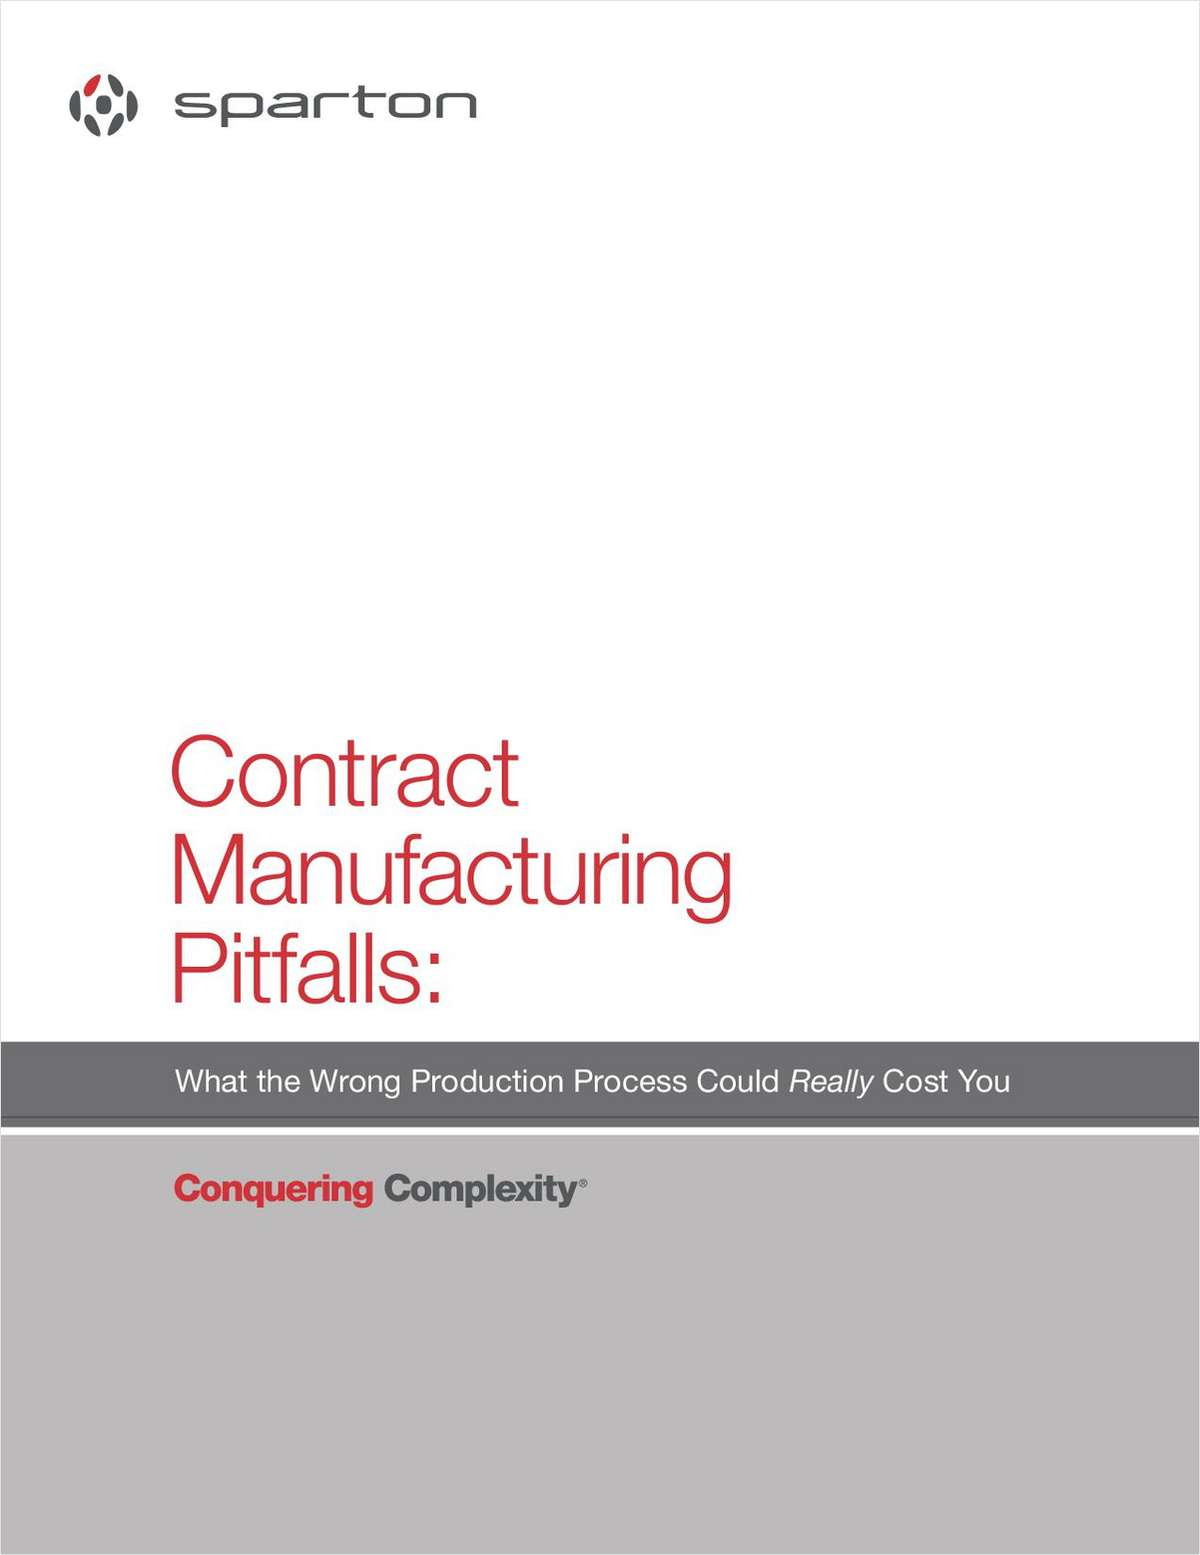 Contract Manufacturing Pitfalls: What the Wrong Production Process Could Really Cost You